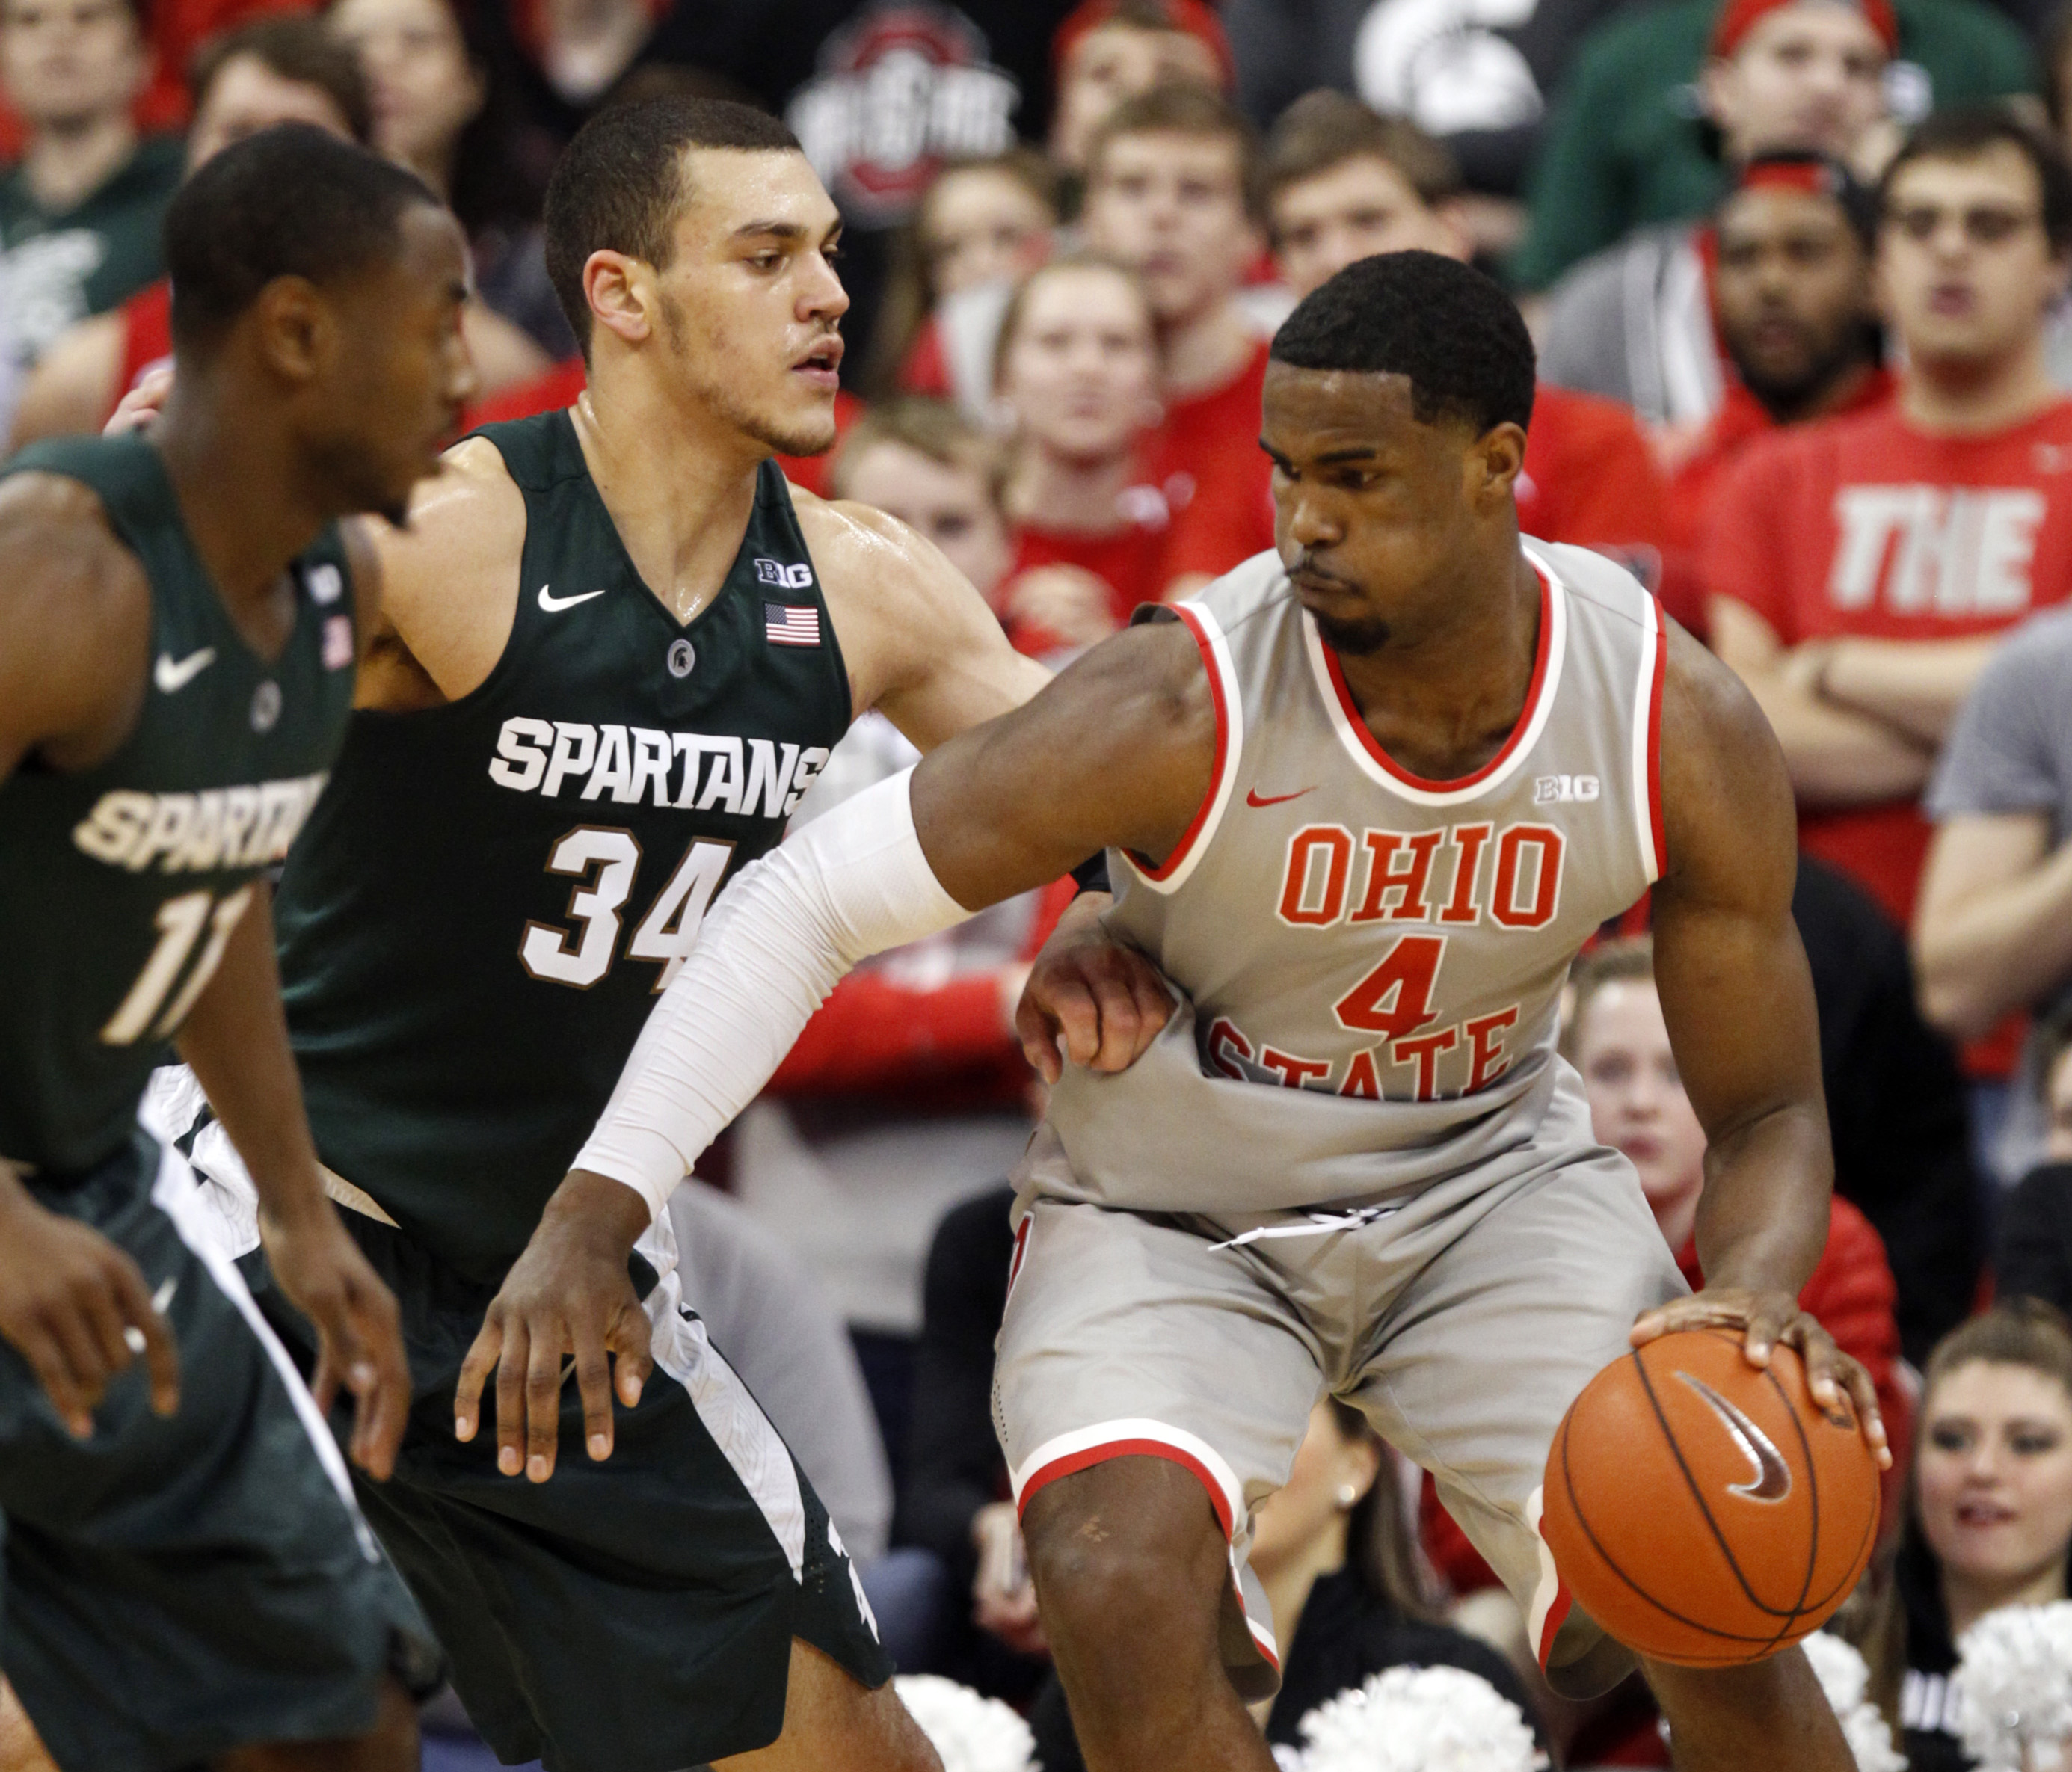 Ohio State's Daniel Giddens, right, works against Michigan State's Gavin Schilling, center, and Lourawls Nairn Jr. during an NCAA college basketball game in Columbus, Ohio, Wednesday, Feb. 23, 2016. Michigan State won 81-62. (AP Photo/Paul Vernon)